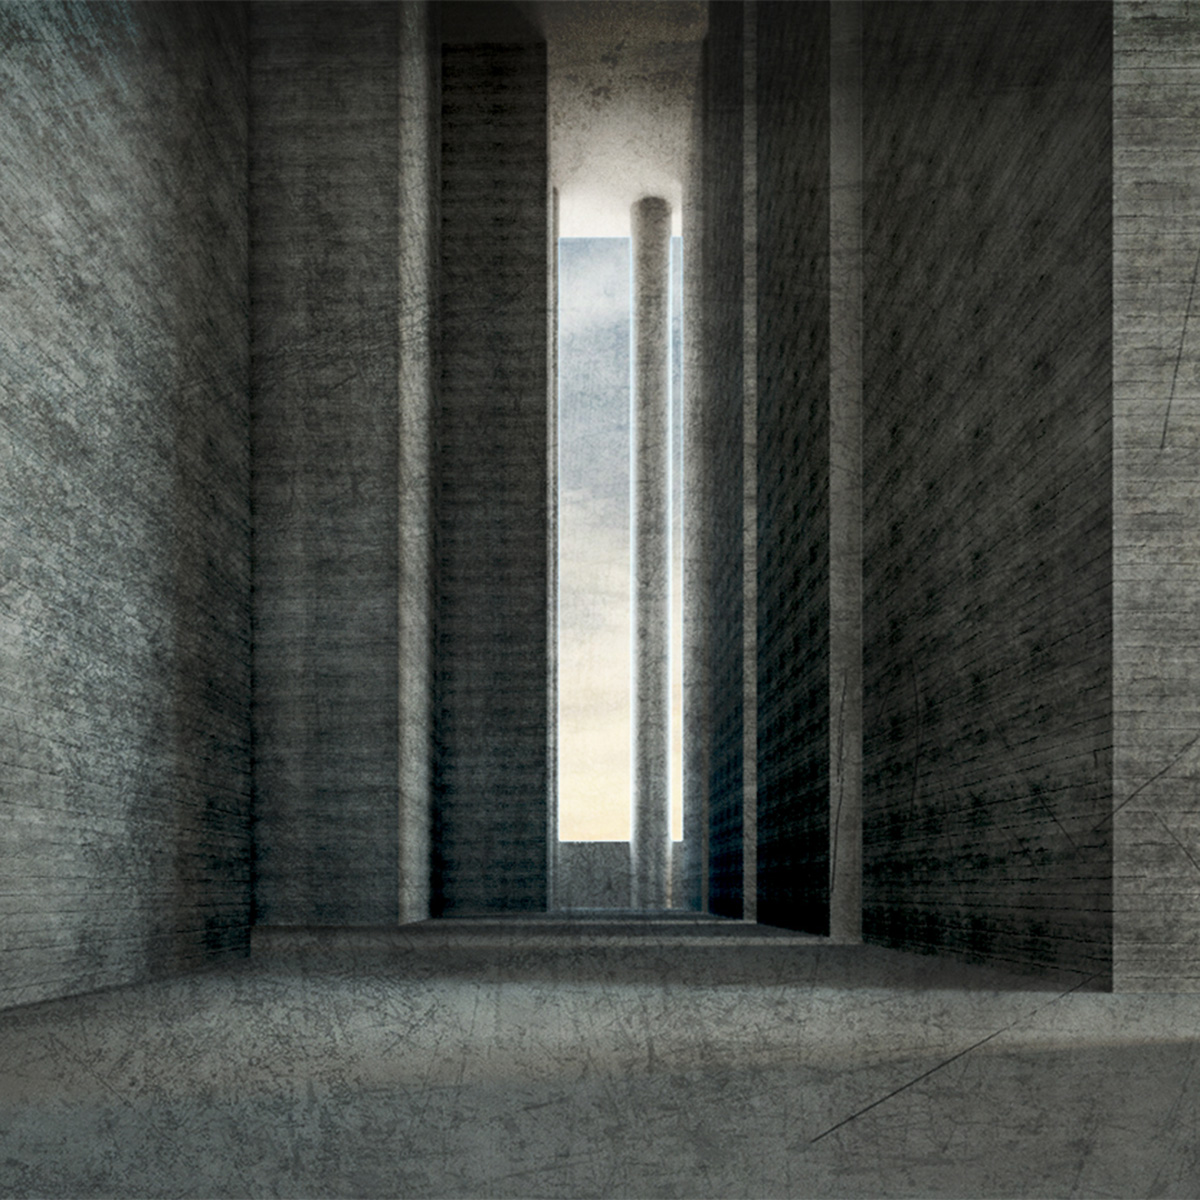 Perspective of an atmospheric streetscape within a dense urban mass by student Monique Paulis